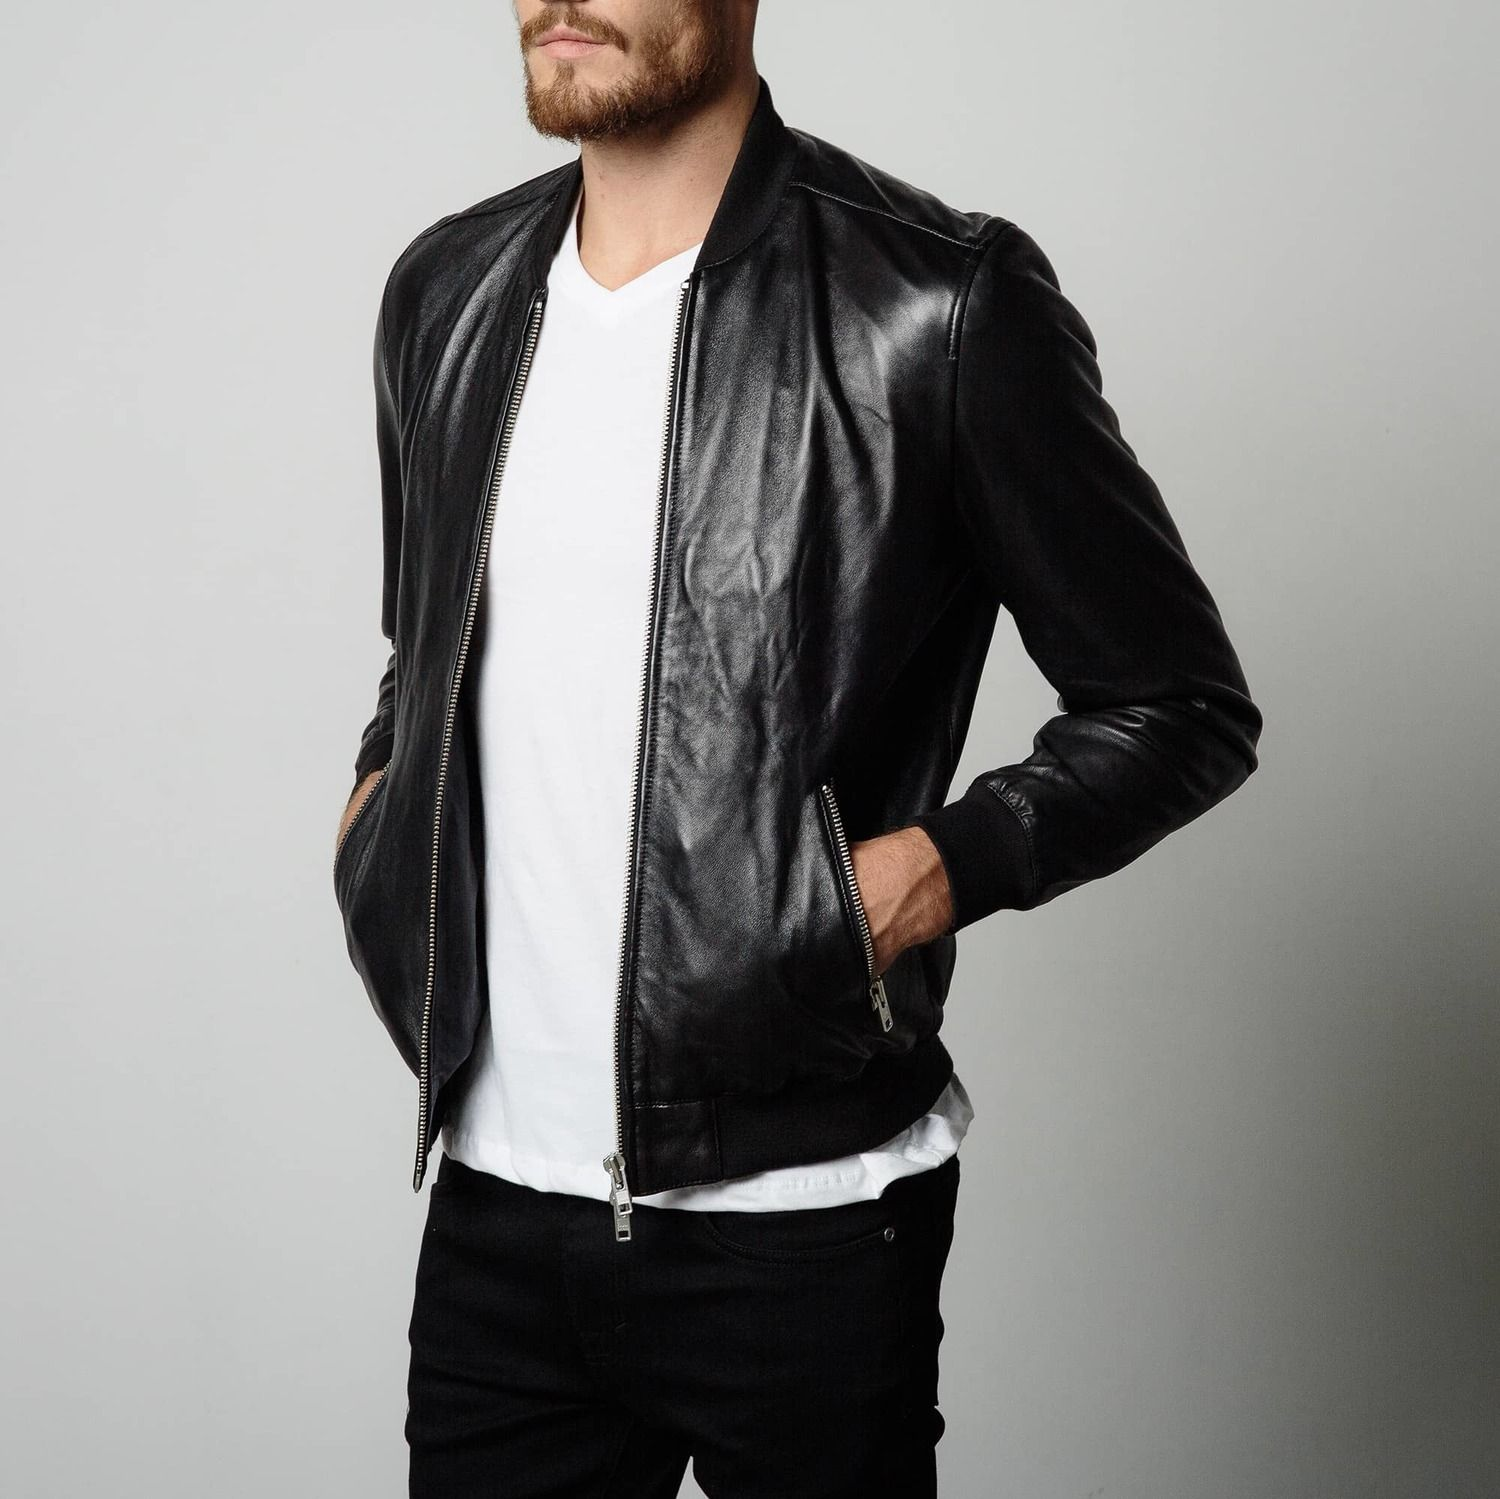 [Bomber Jacket] Leather Bomber Jacket in Black Mens